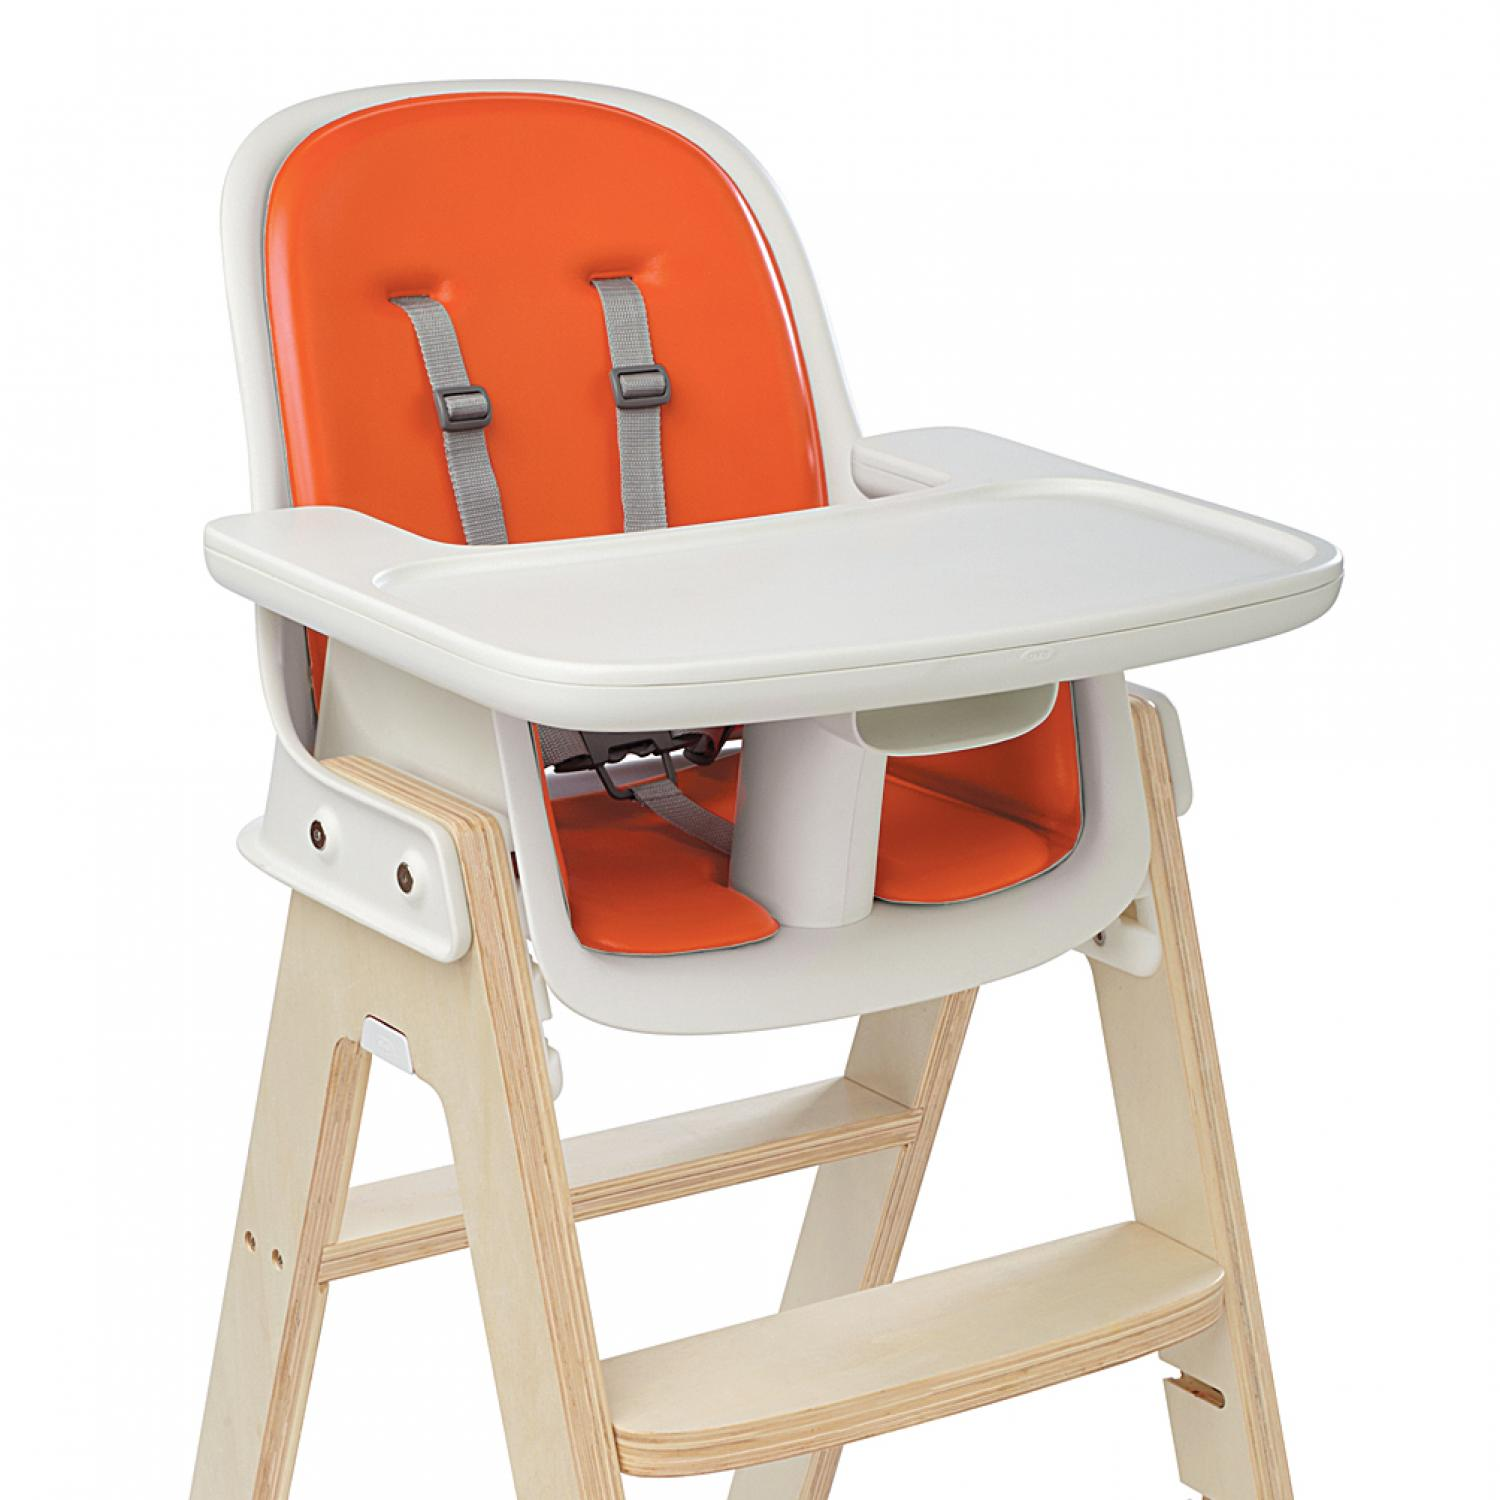 oxo tot sprout chair folding canopy with footrest buying guide high chairs for babies and toddlers parenting